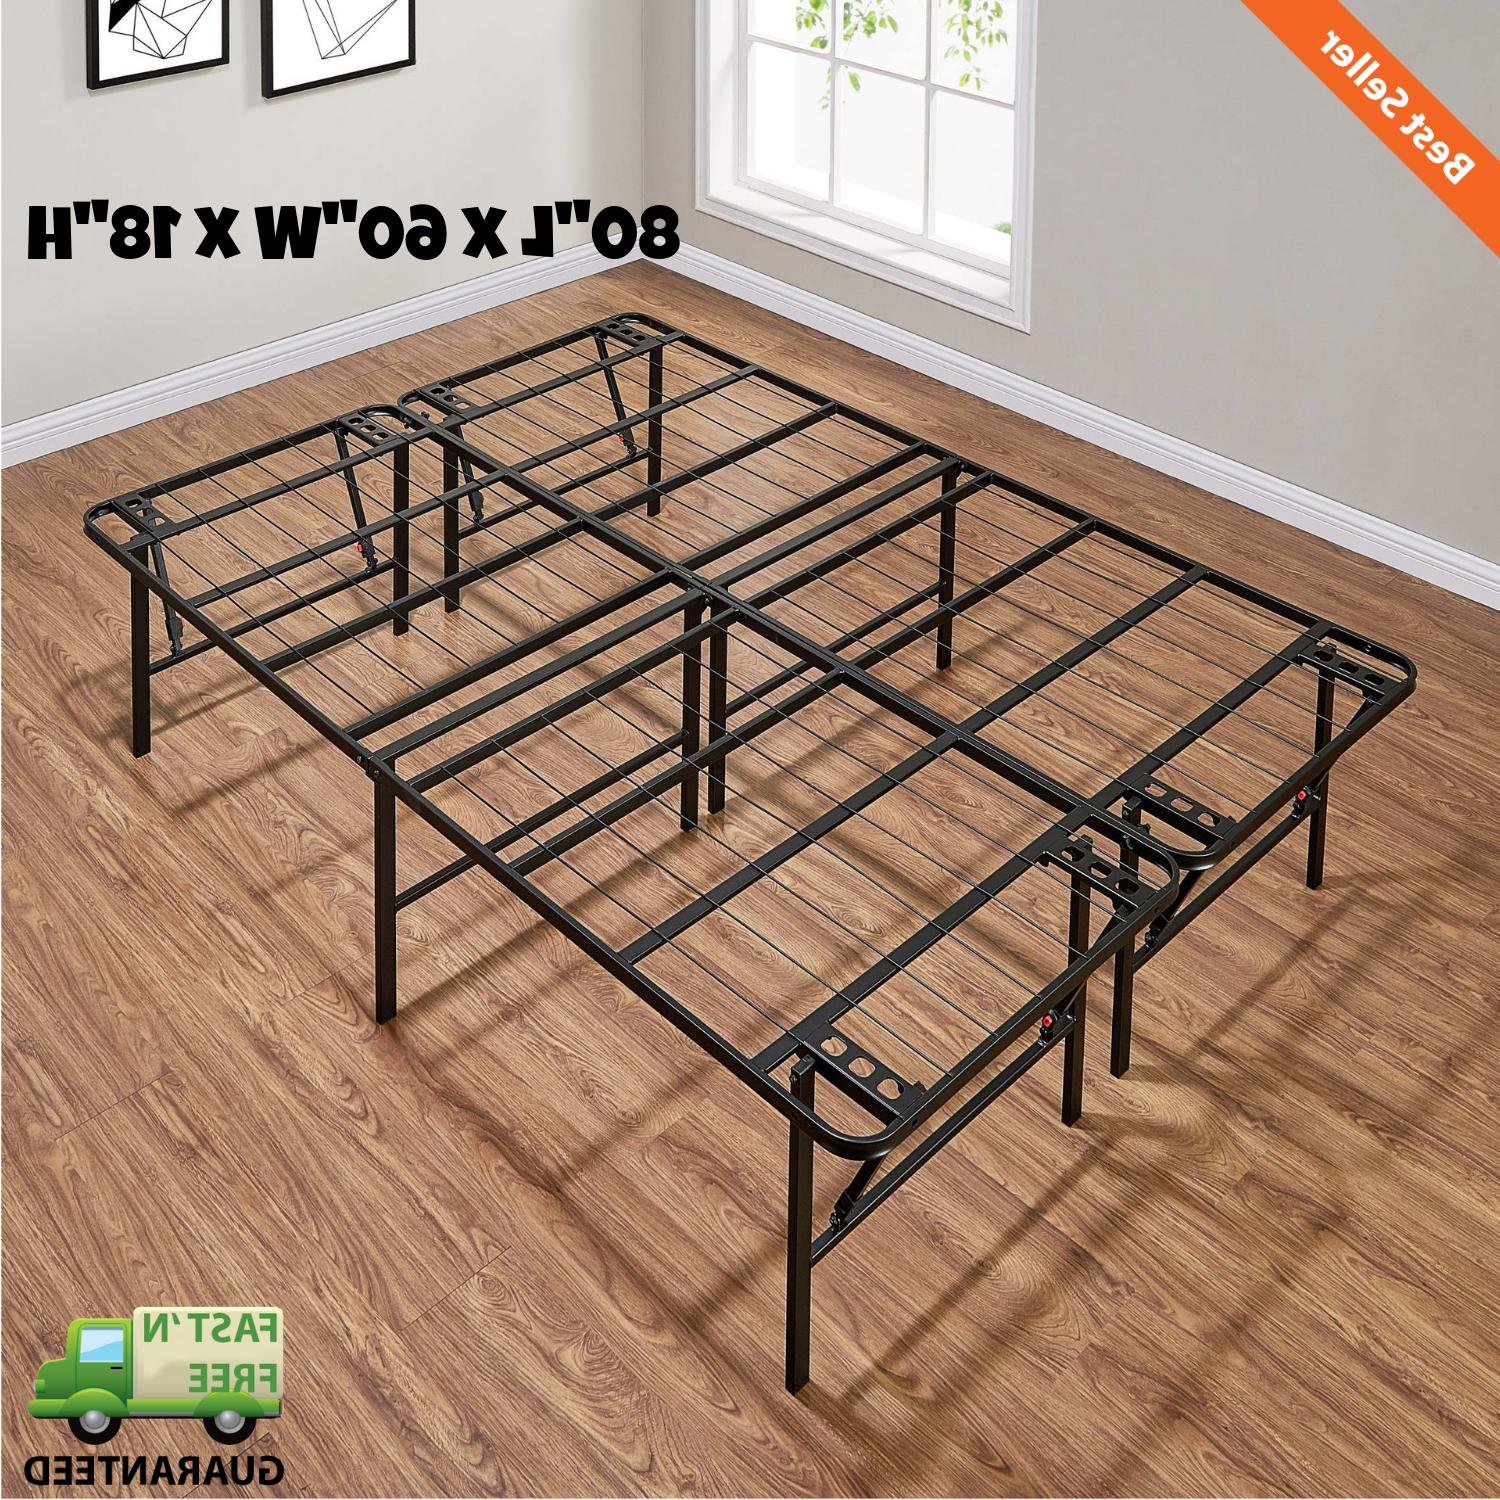 18 inch platform bed frame high profile